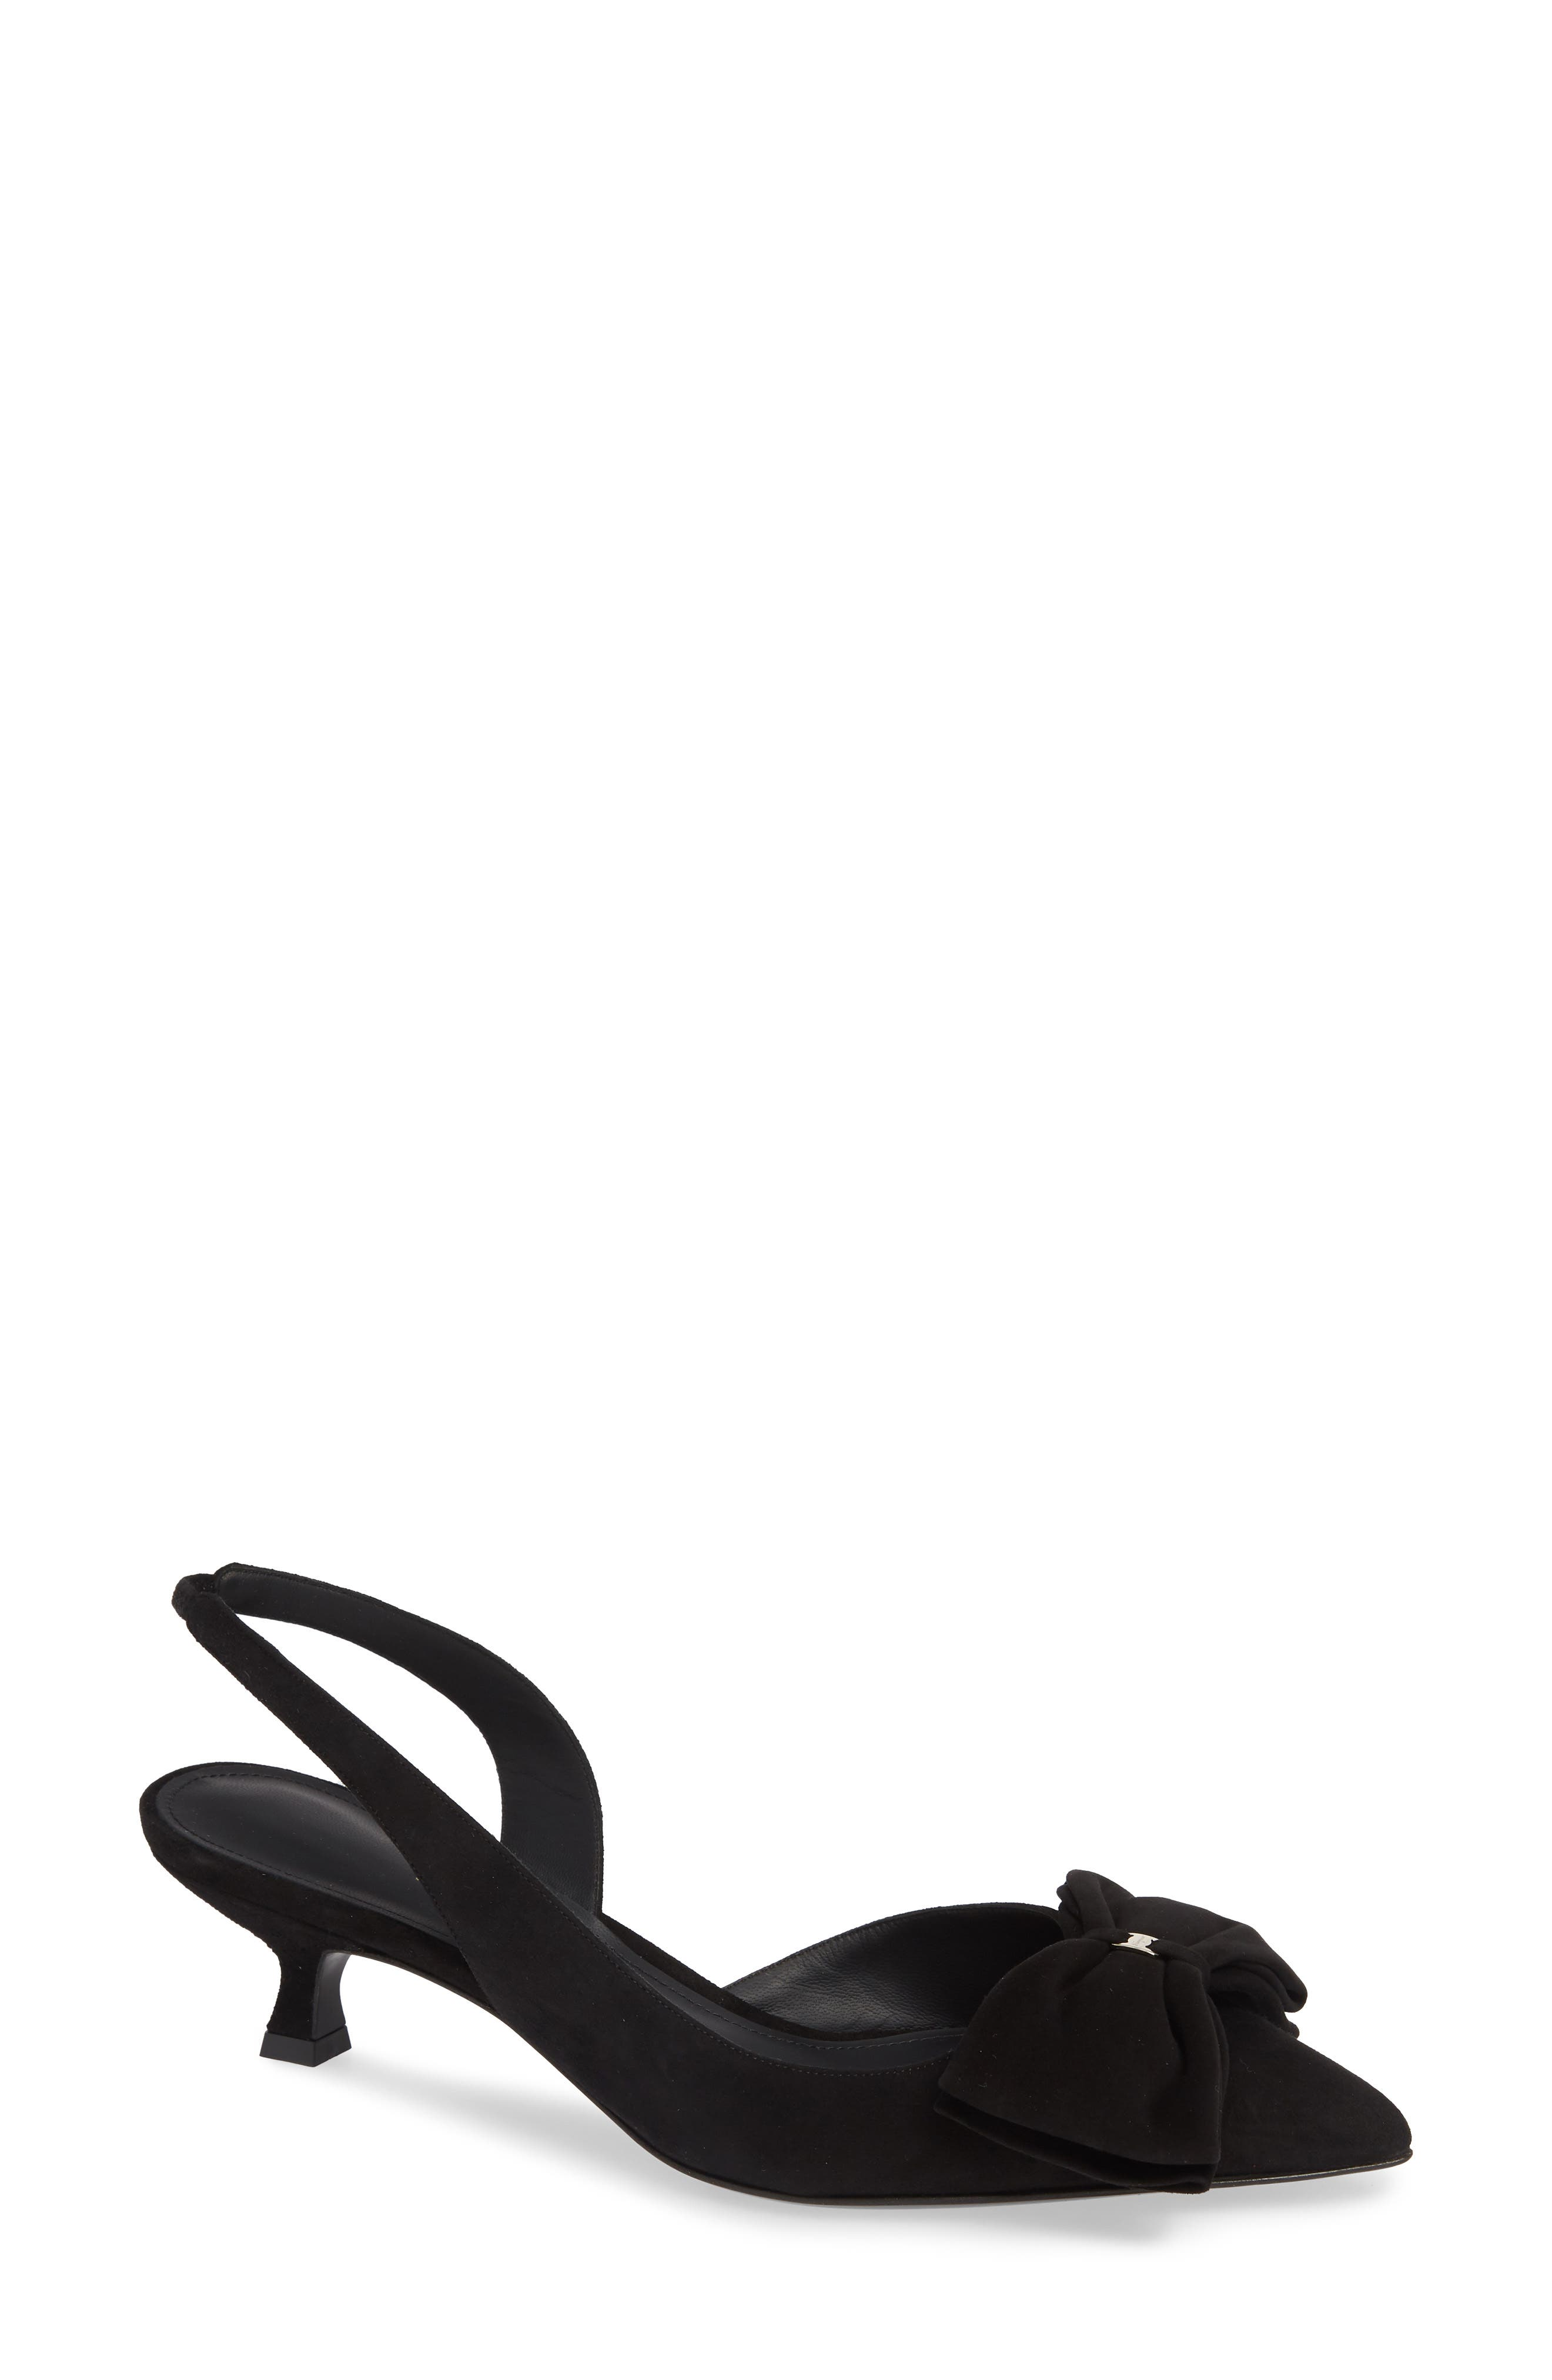 Reda Bow Slingback Pump,                             Main thumbnail 1, color,                             BLACK